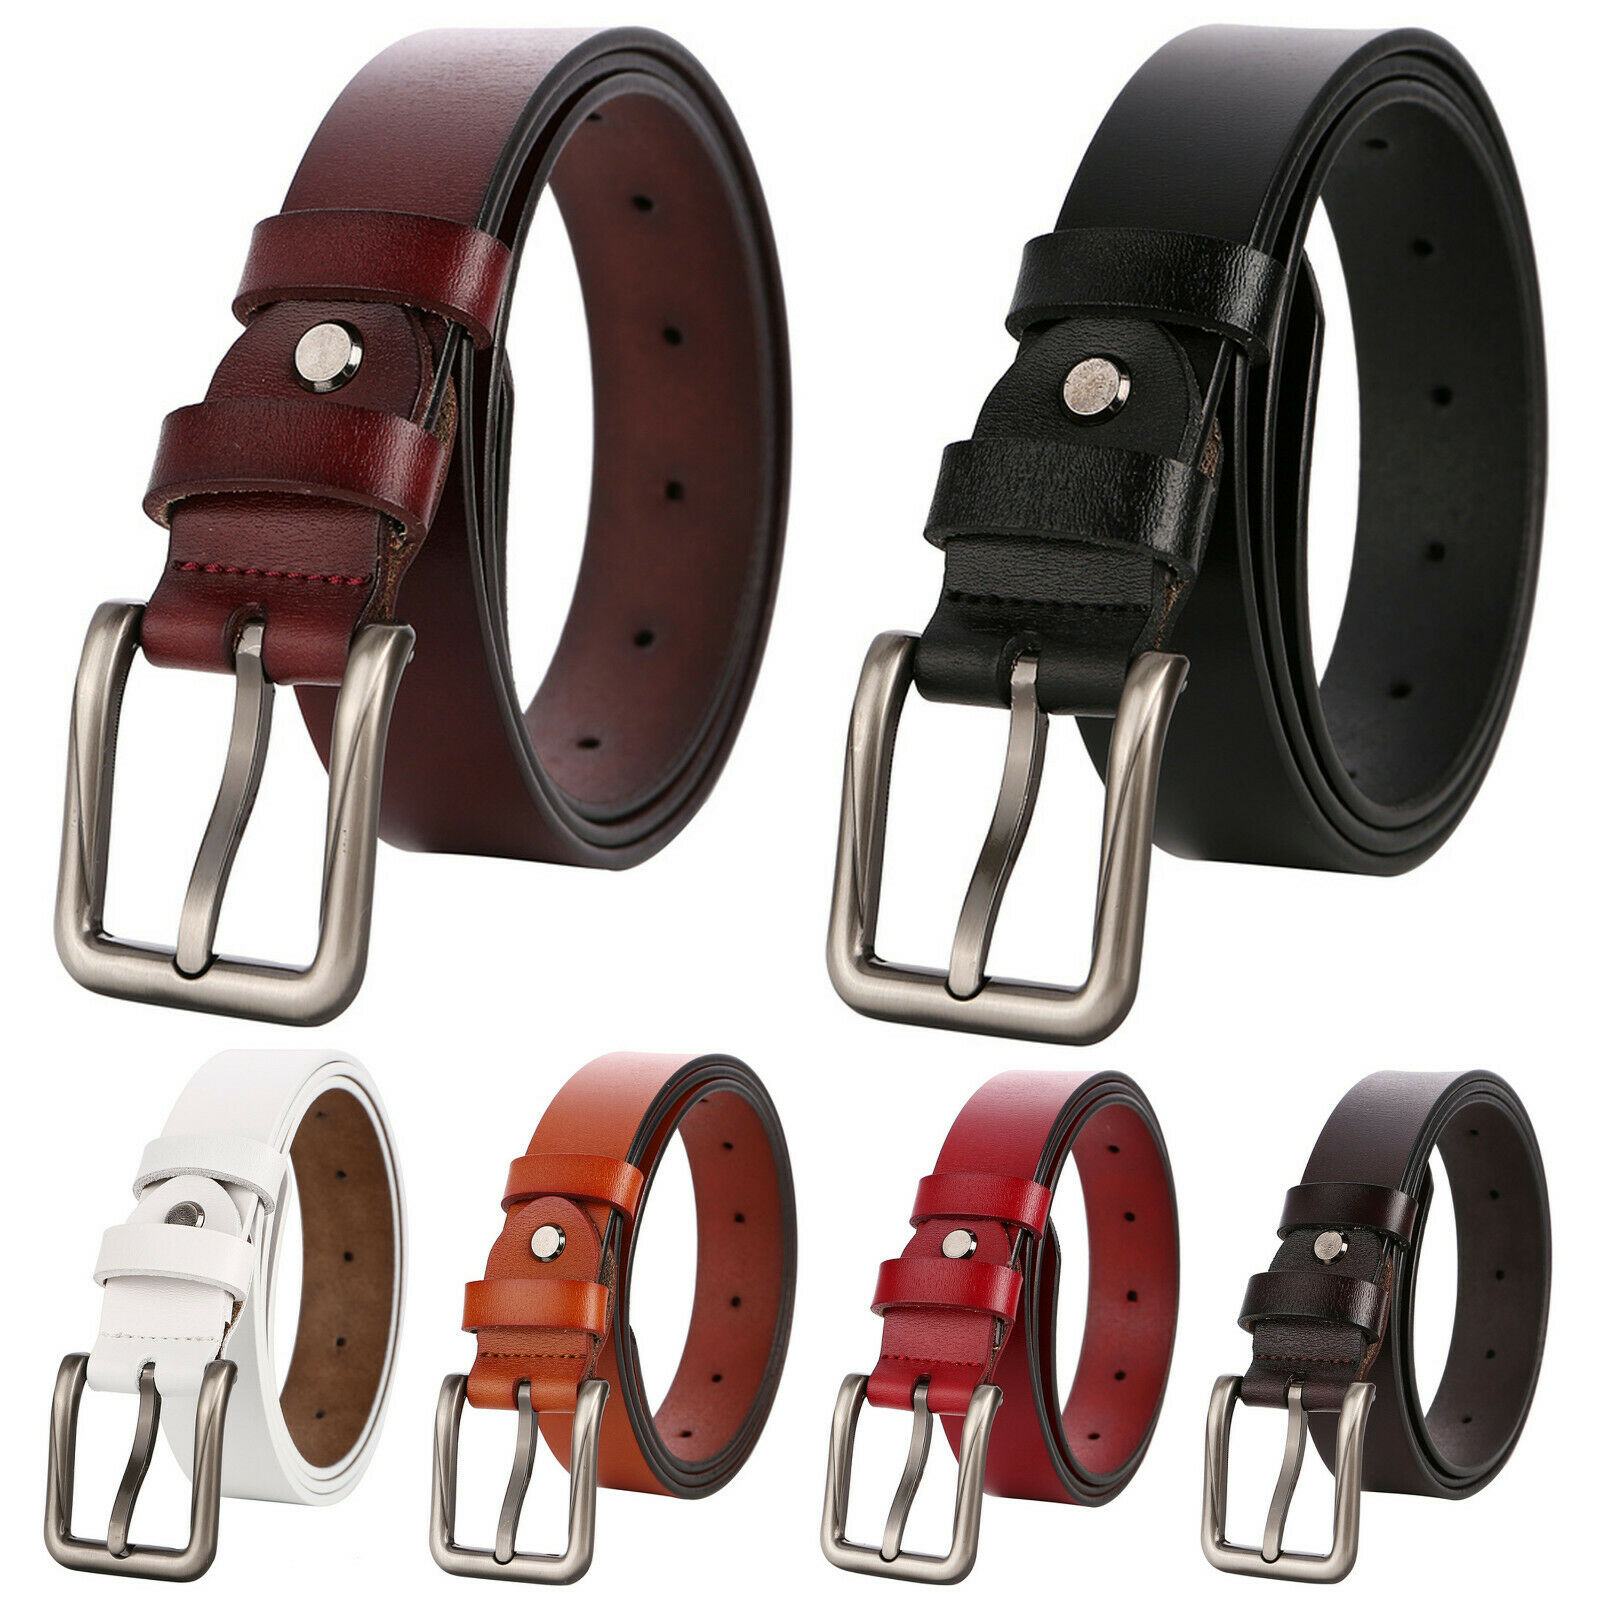 Women's and Teenage Girl's Genuine Leather Classic Square Metal Buckle Jean Belt Belts